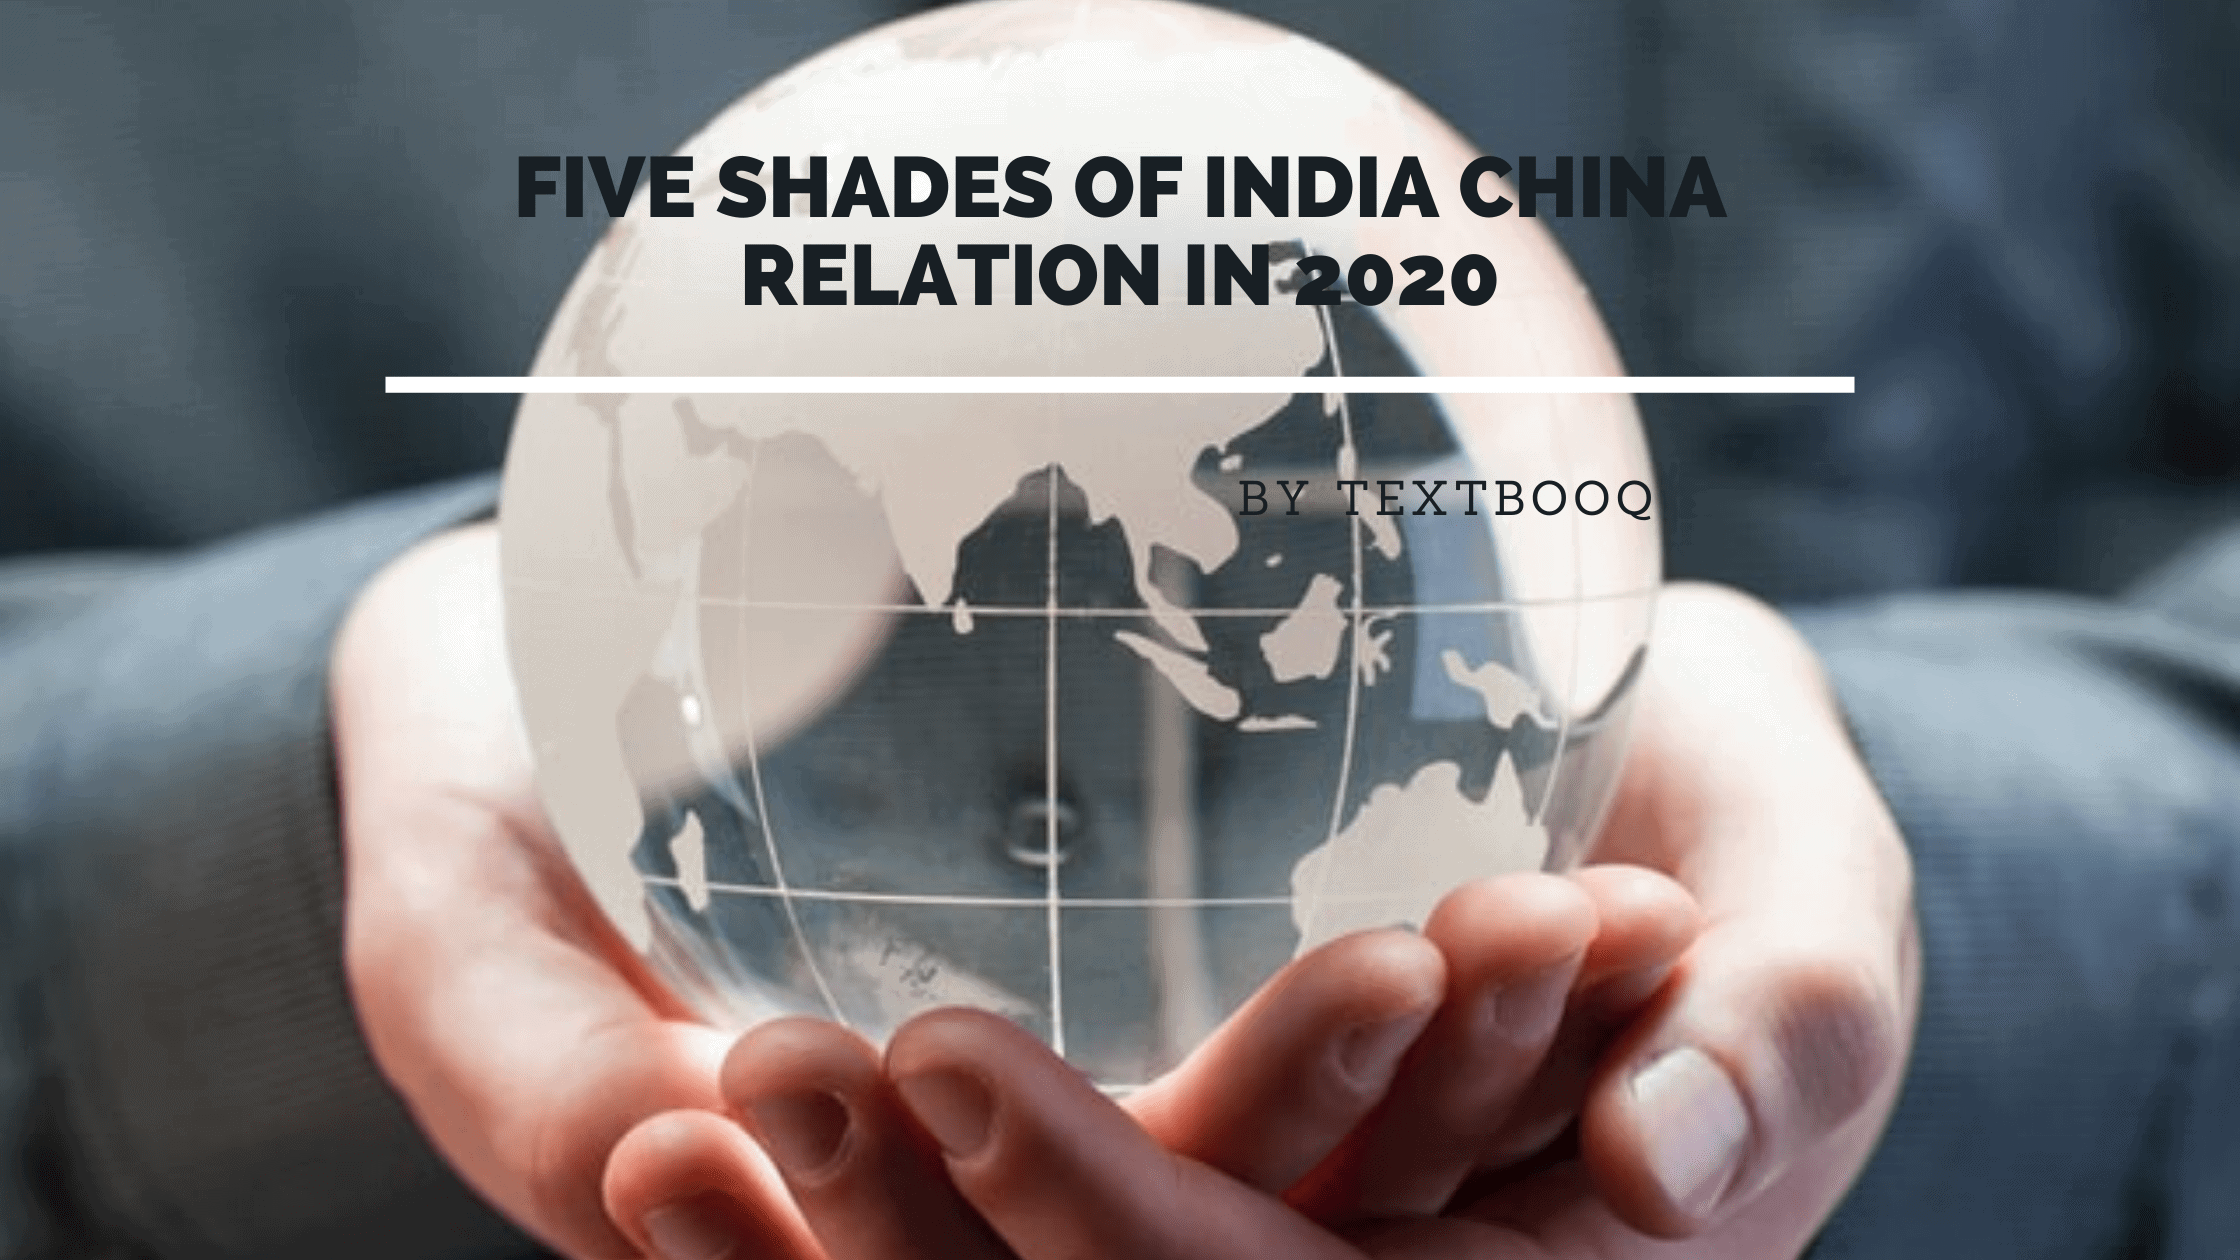 Five Shades of India China Relation in 2020